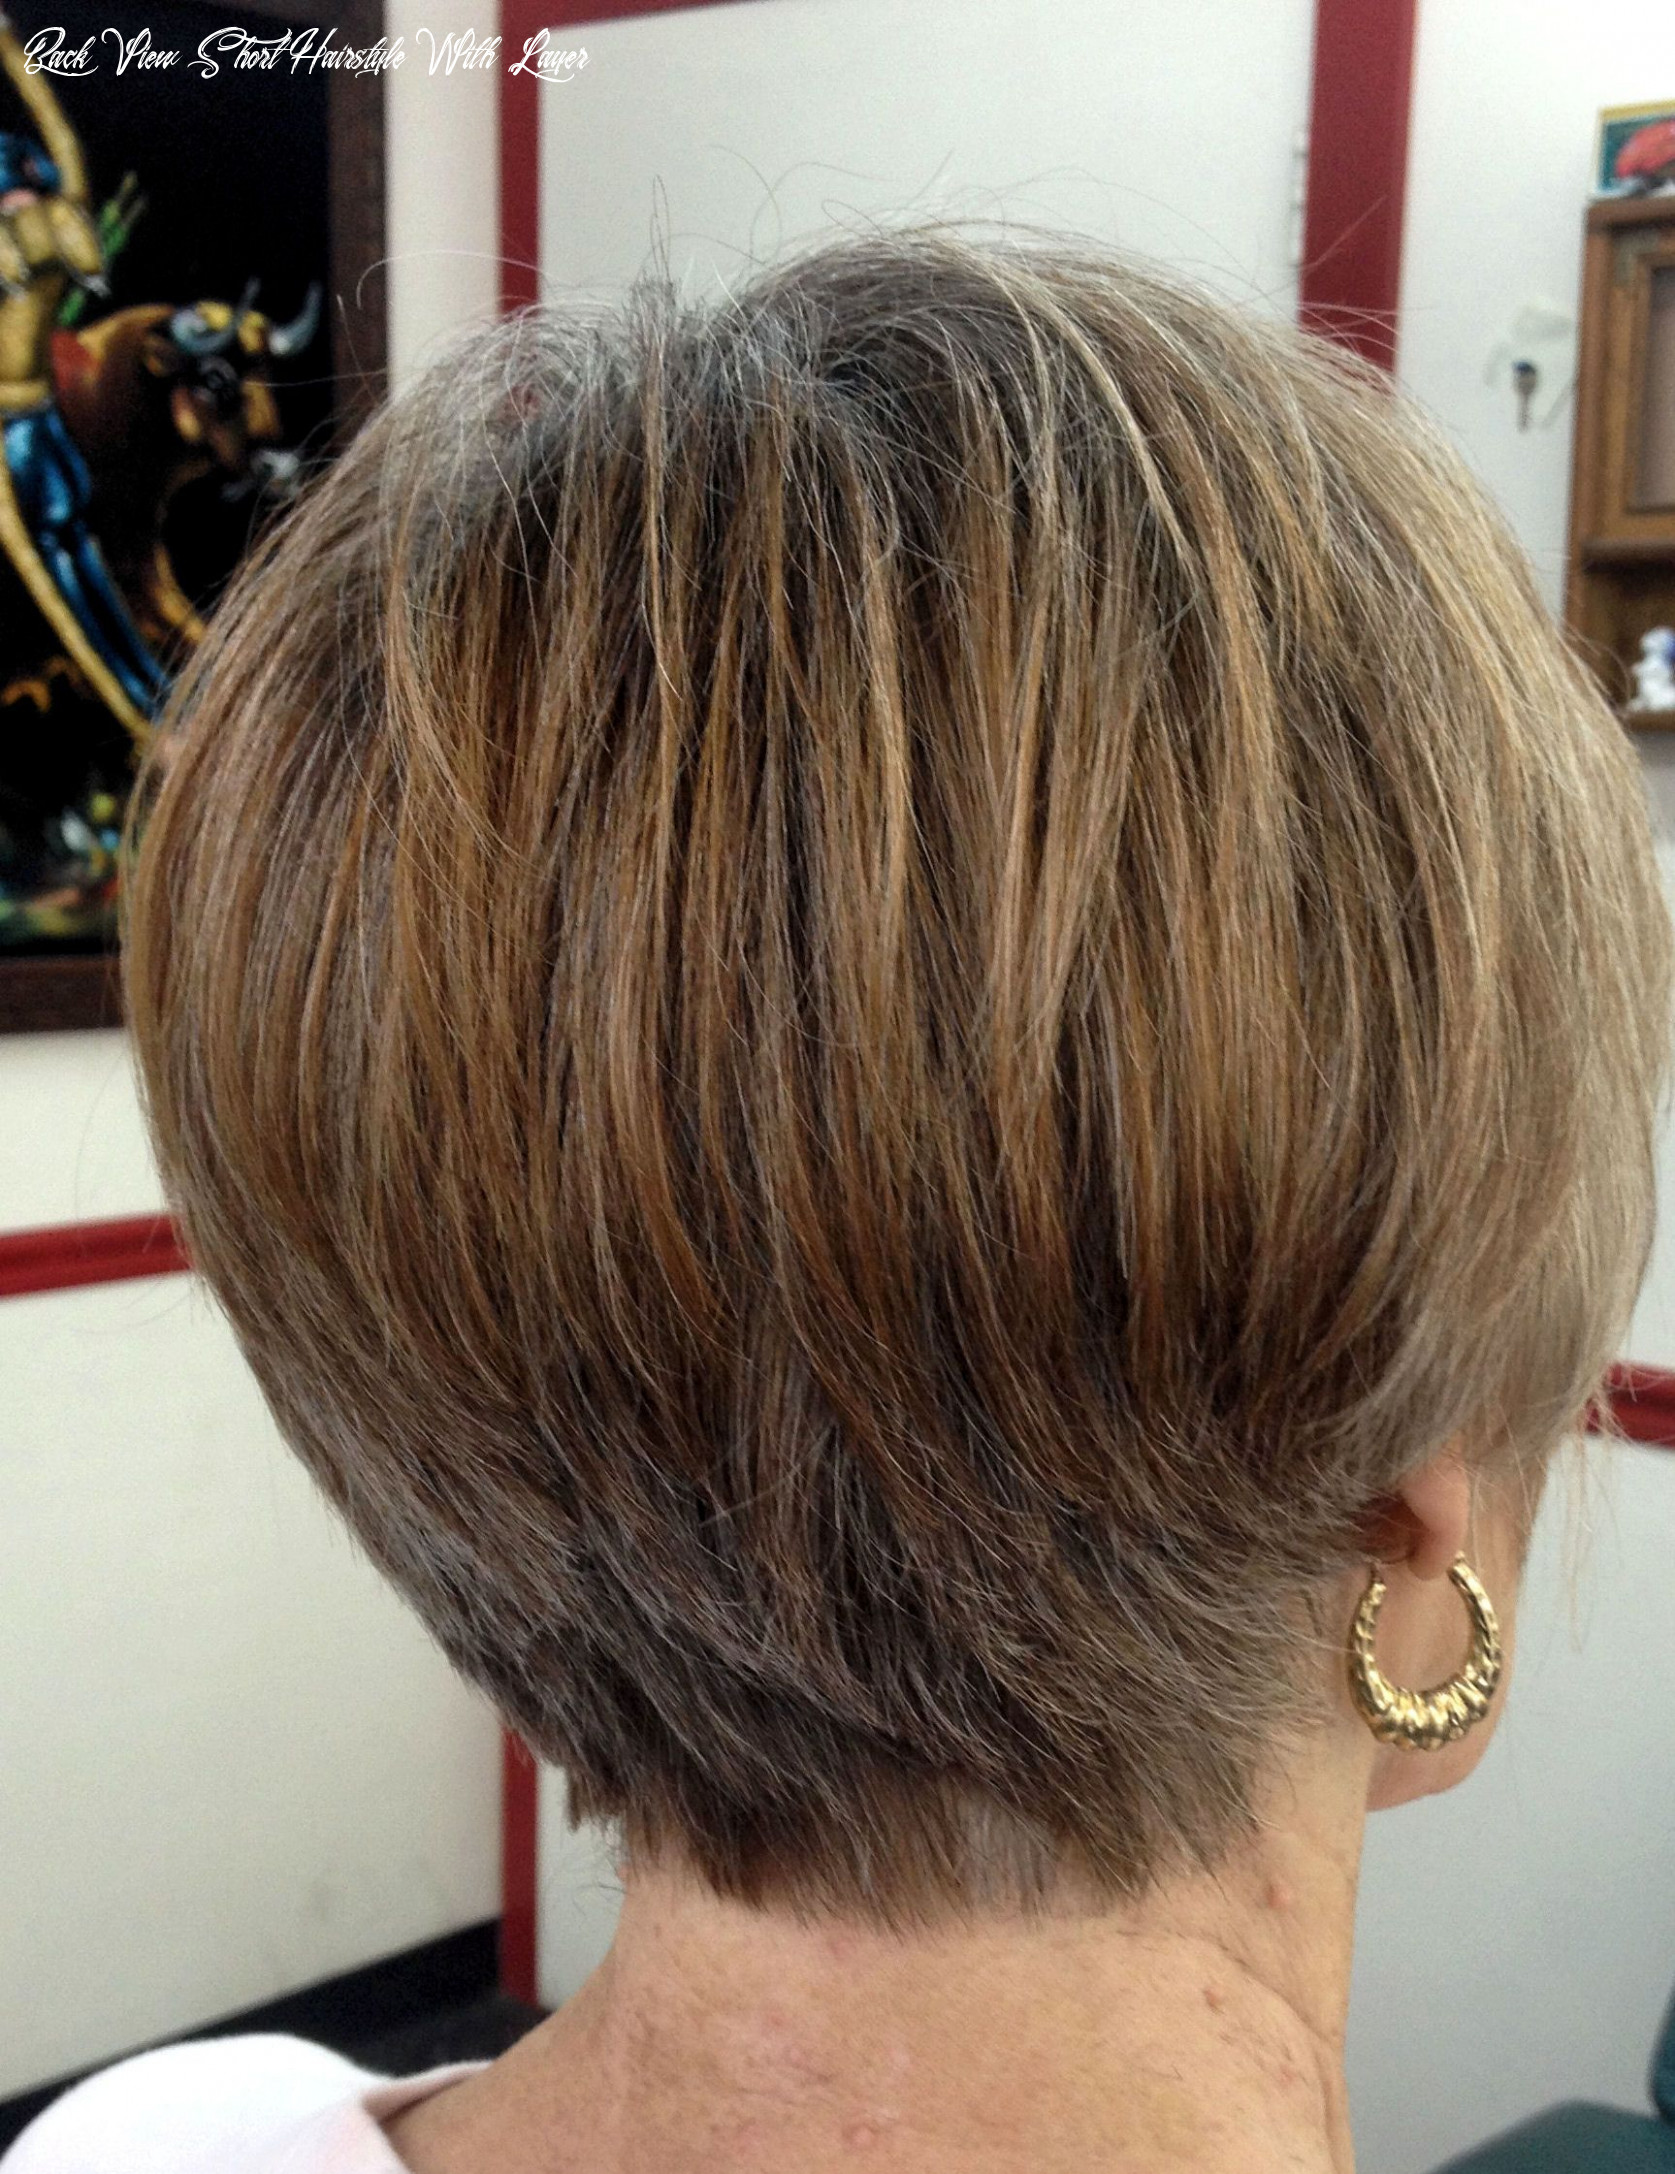 Pin on haircuts for ladies and for men back view short hairstyle with layer